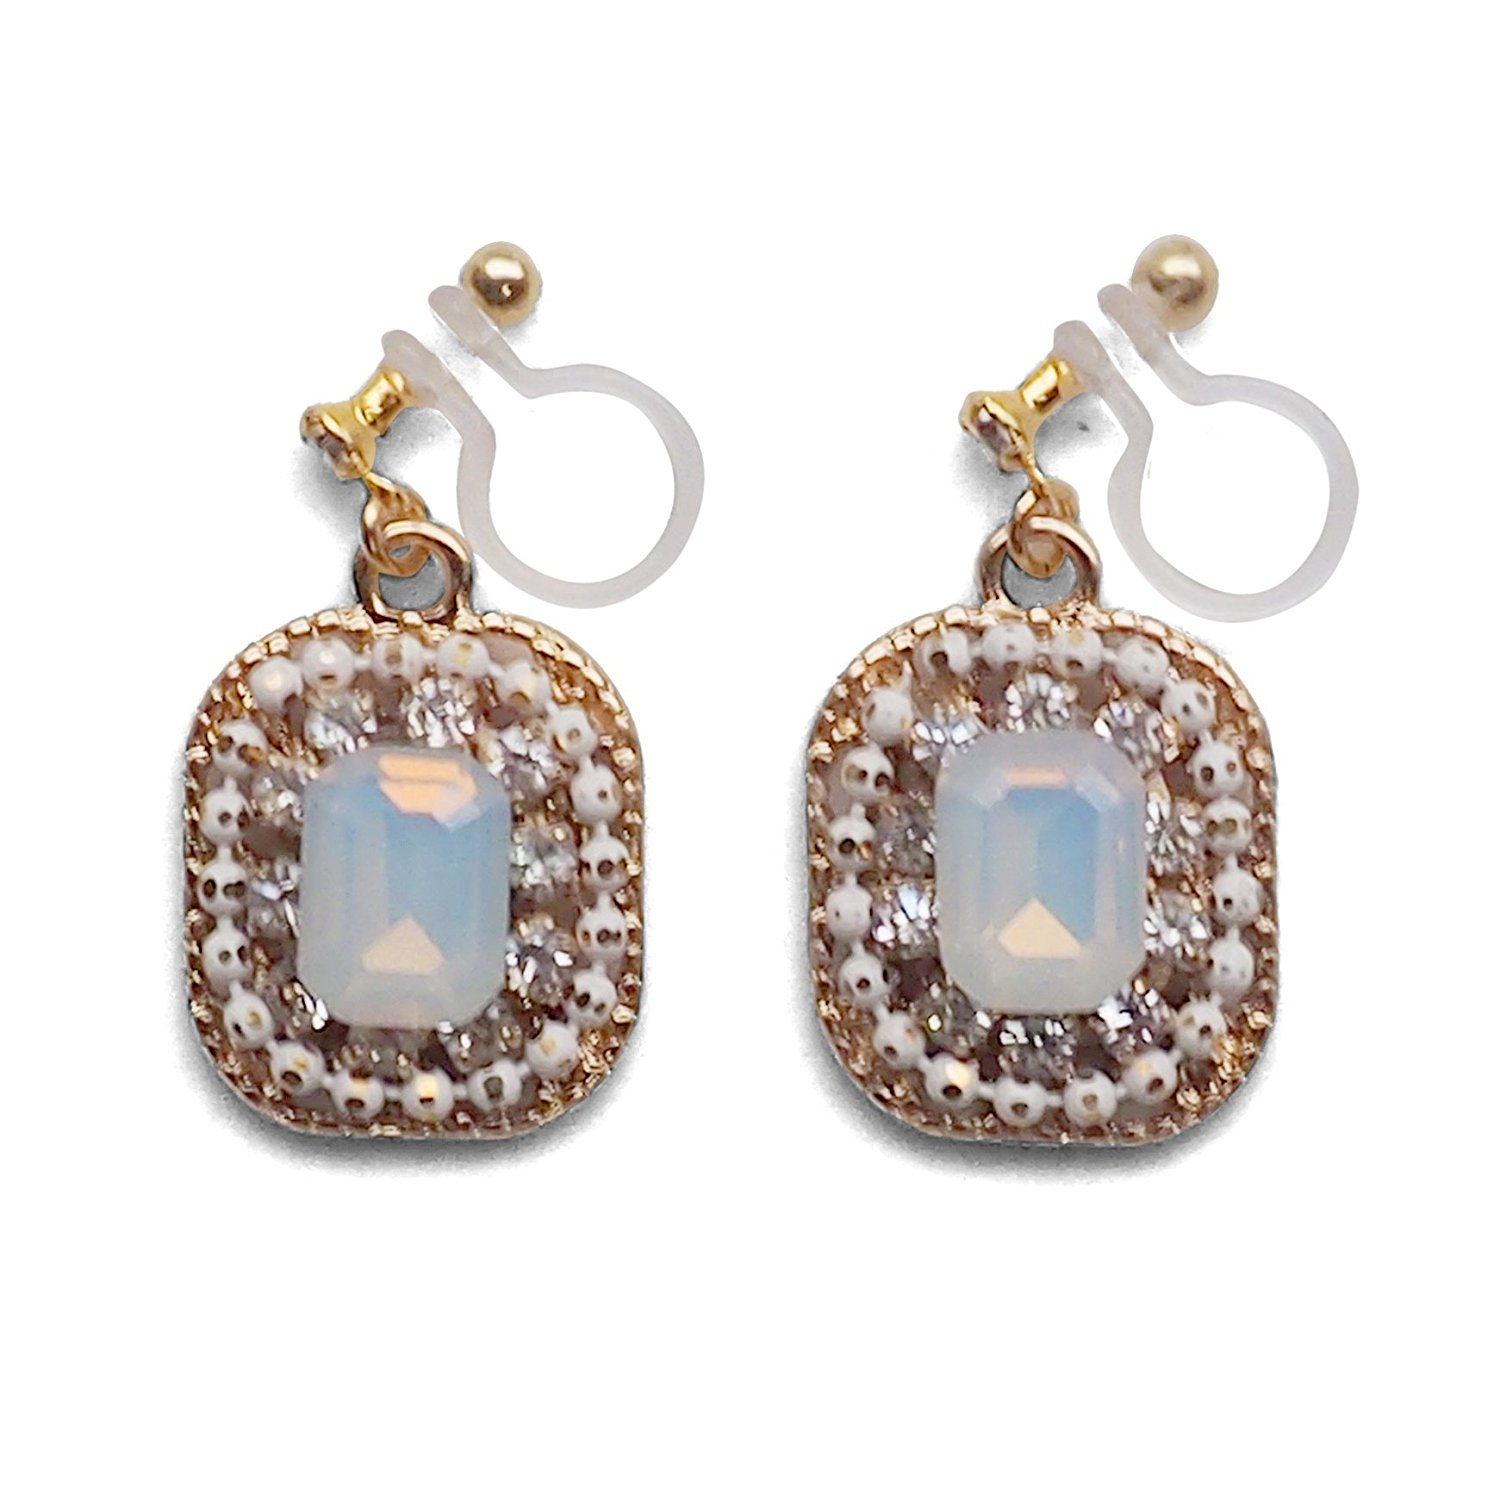 White Crystal Rhinestone Square Invisible Clip On Earrings Bridal Wedding Dangle Gold tone Clip-ons